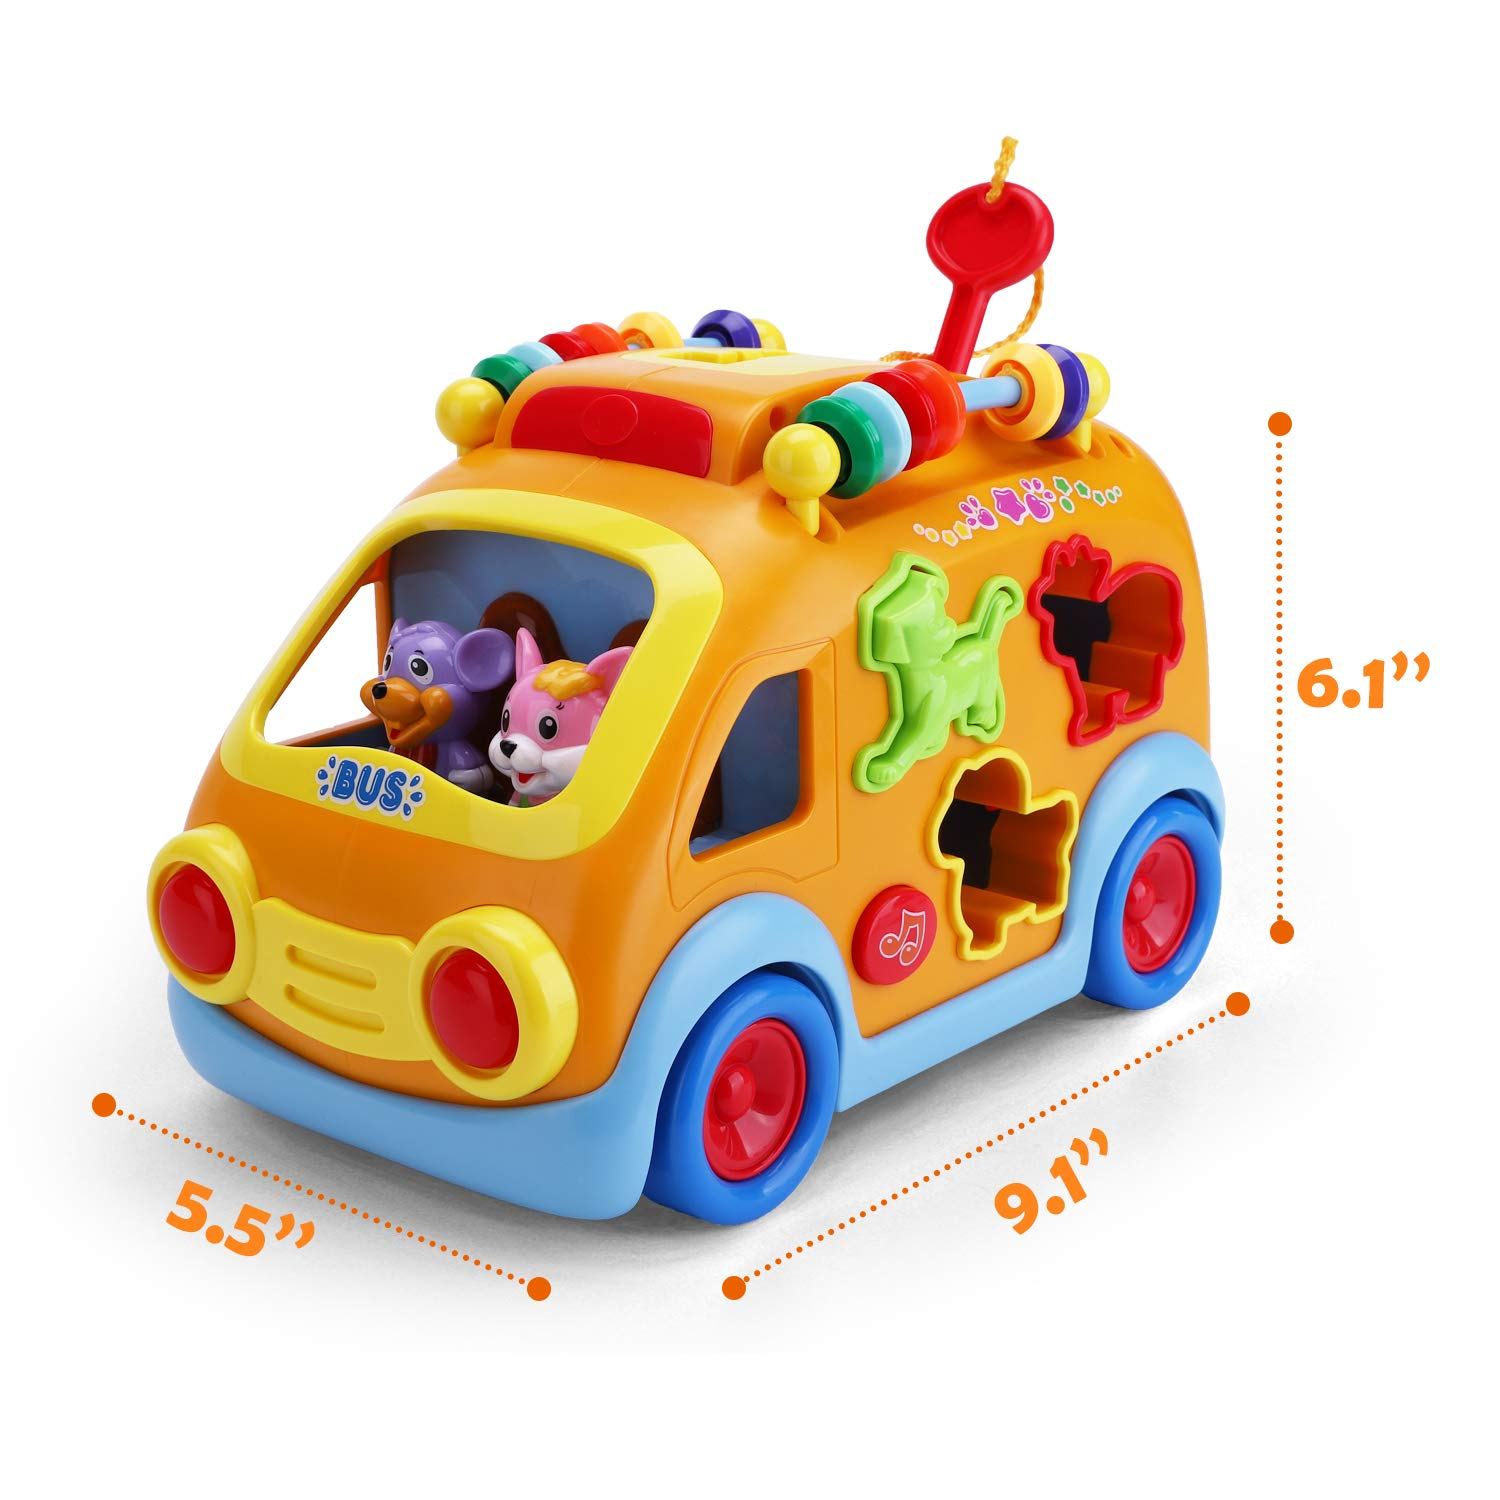 iPlay, iLearn Electronic Musical Bus, Baby Sensory Toy, 3D Animal Matching Car w/ Gear, Early Development, Learning, Educational Gift for 1, 2 Year Olds Girls Boys Toddlers Kids by iPlay, iLearn (Image #7)